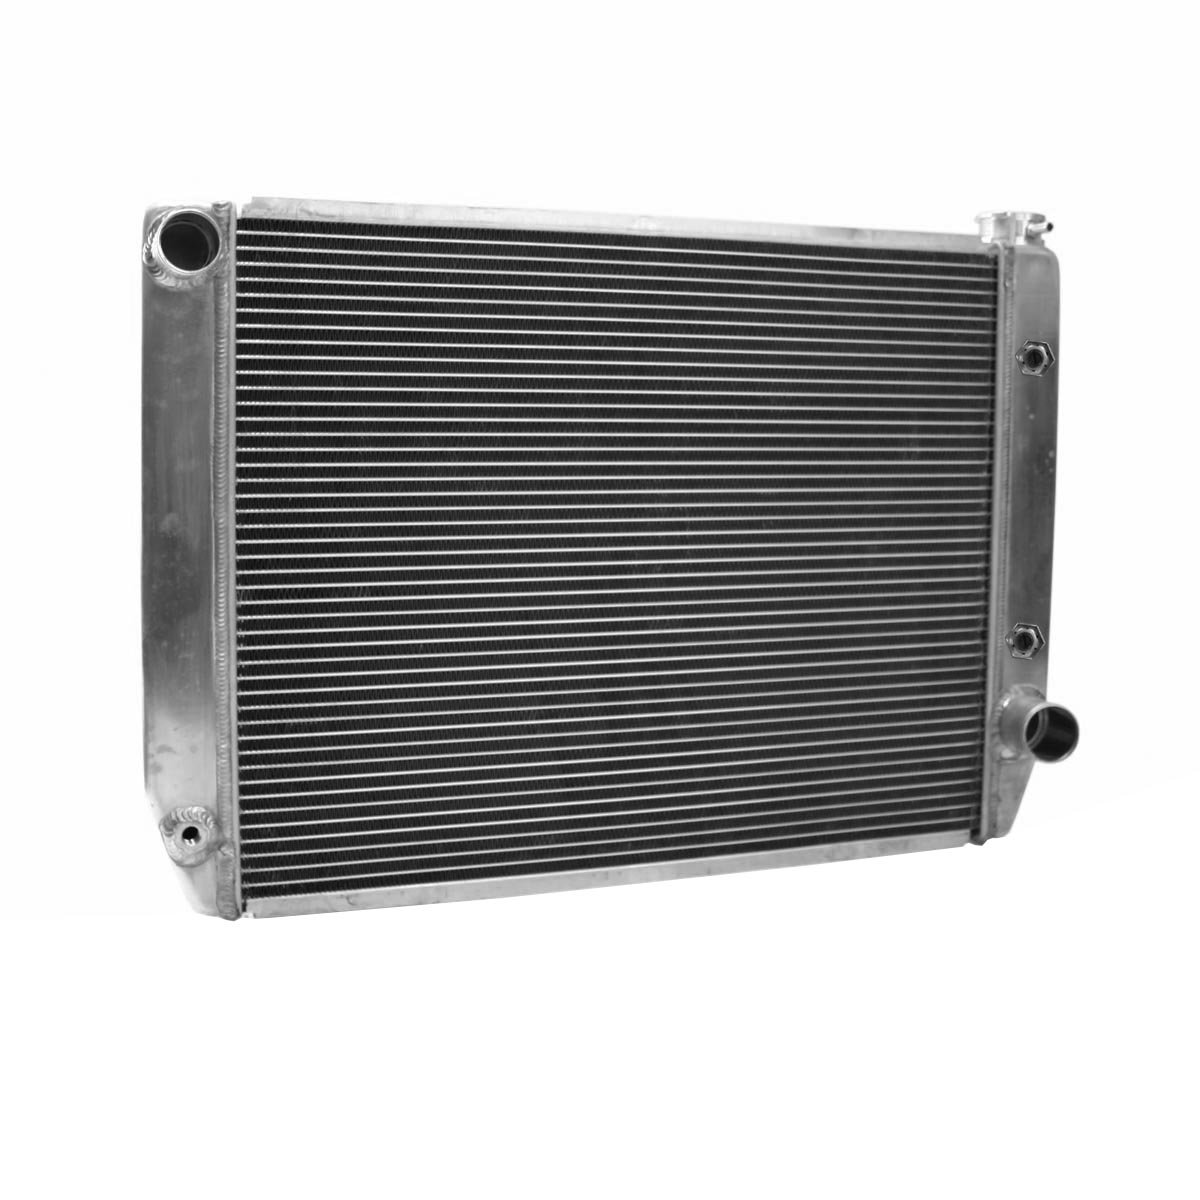 Griffin Radiator 1-25242-T Universal ClassicCool 27.5'' x 19'' Aluminum Radiator with 2 Rows of 1'' Tube